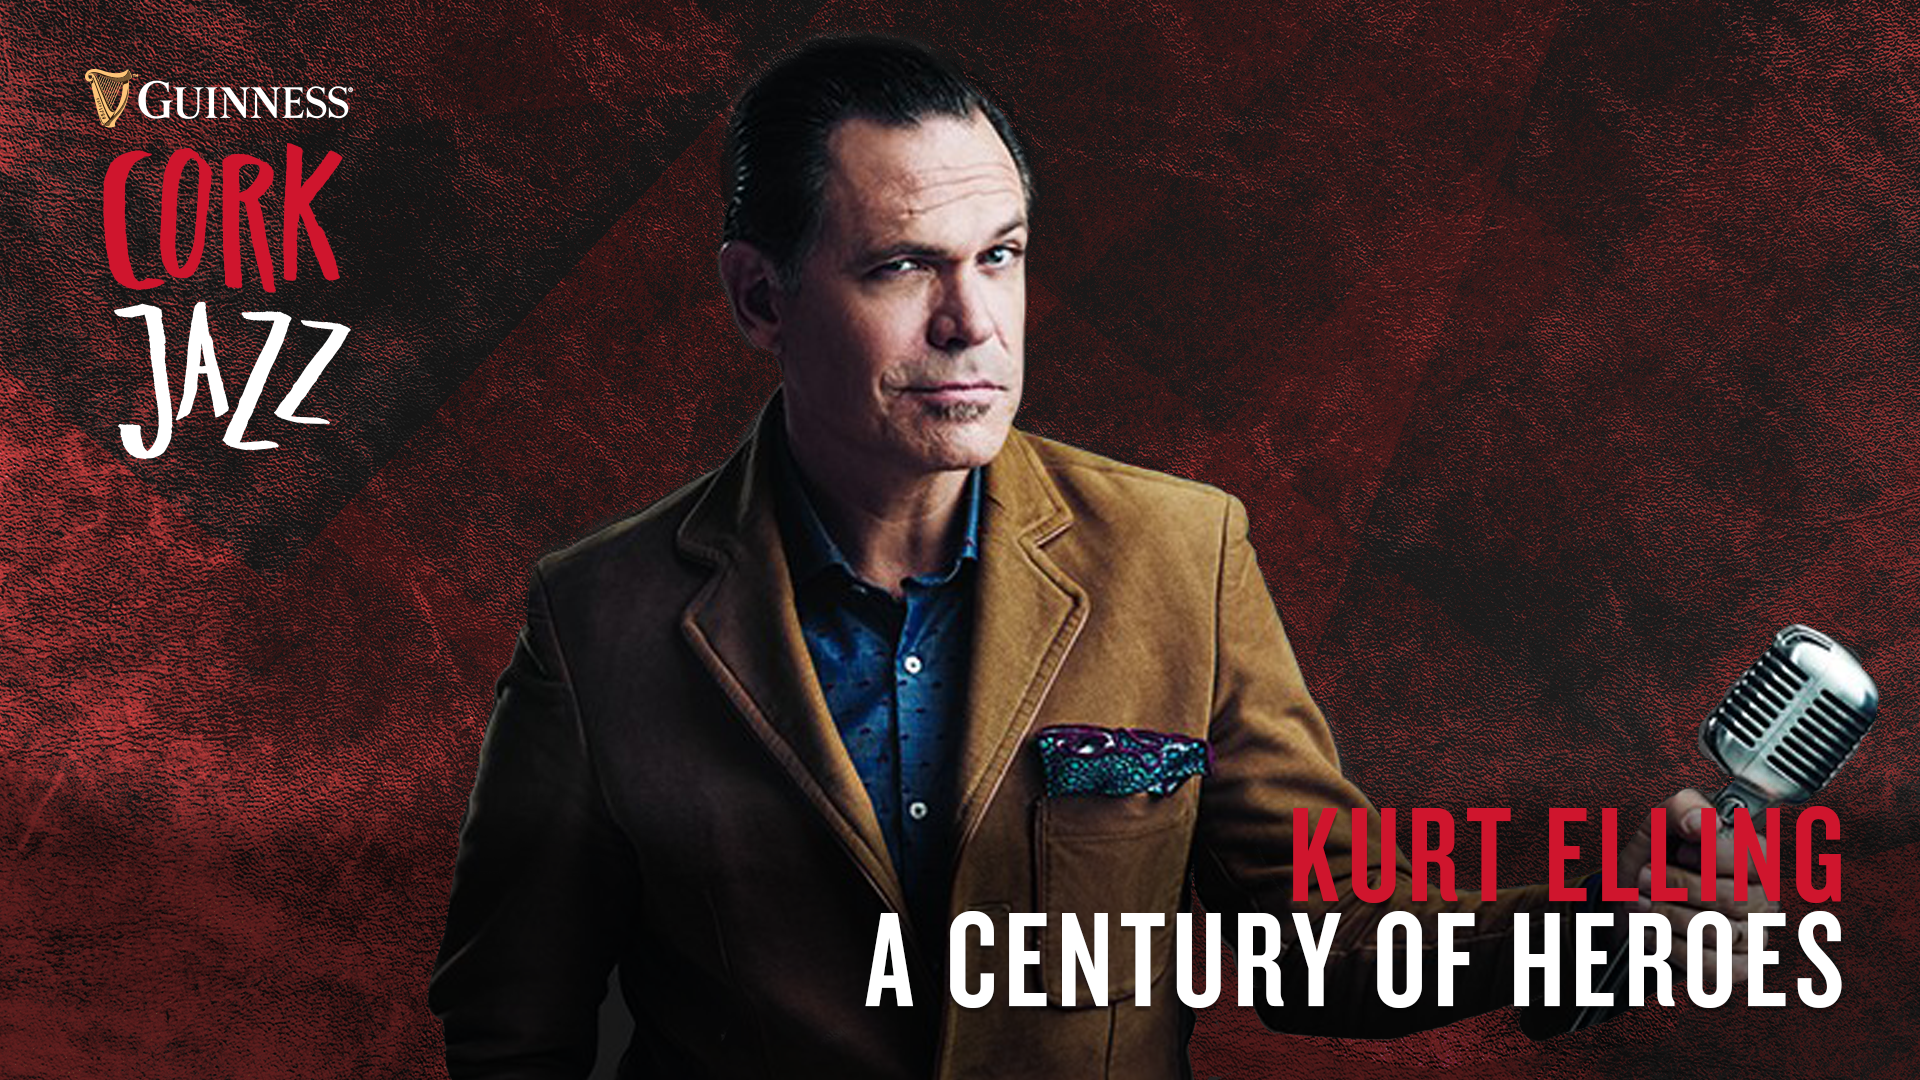 Grammy winner, Kurt Elling brings his Century of Heroes show to Guinness Cork Jazz 2019